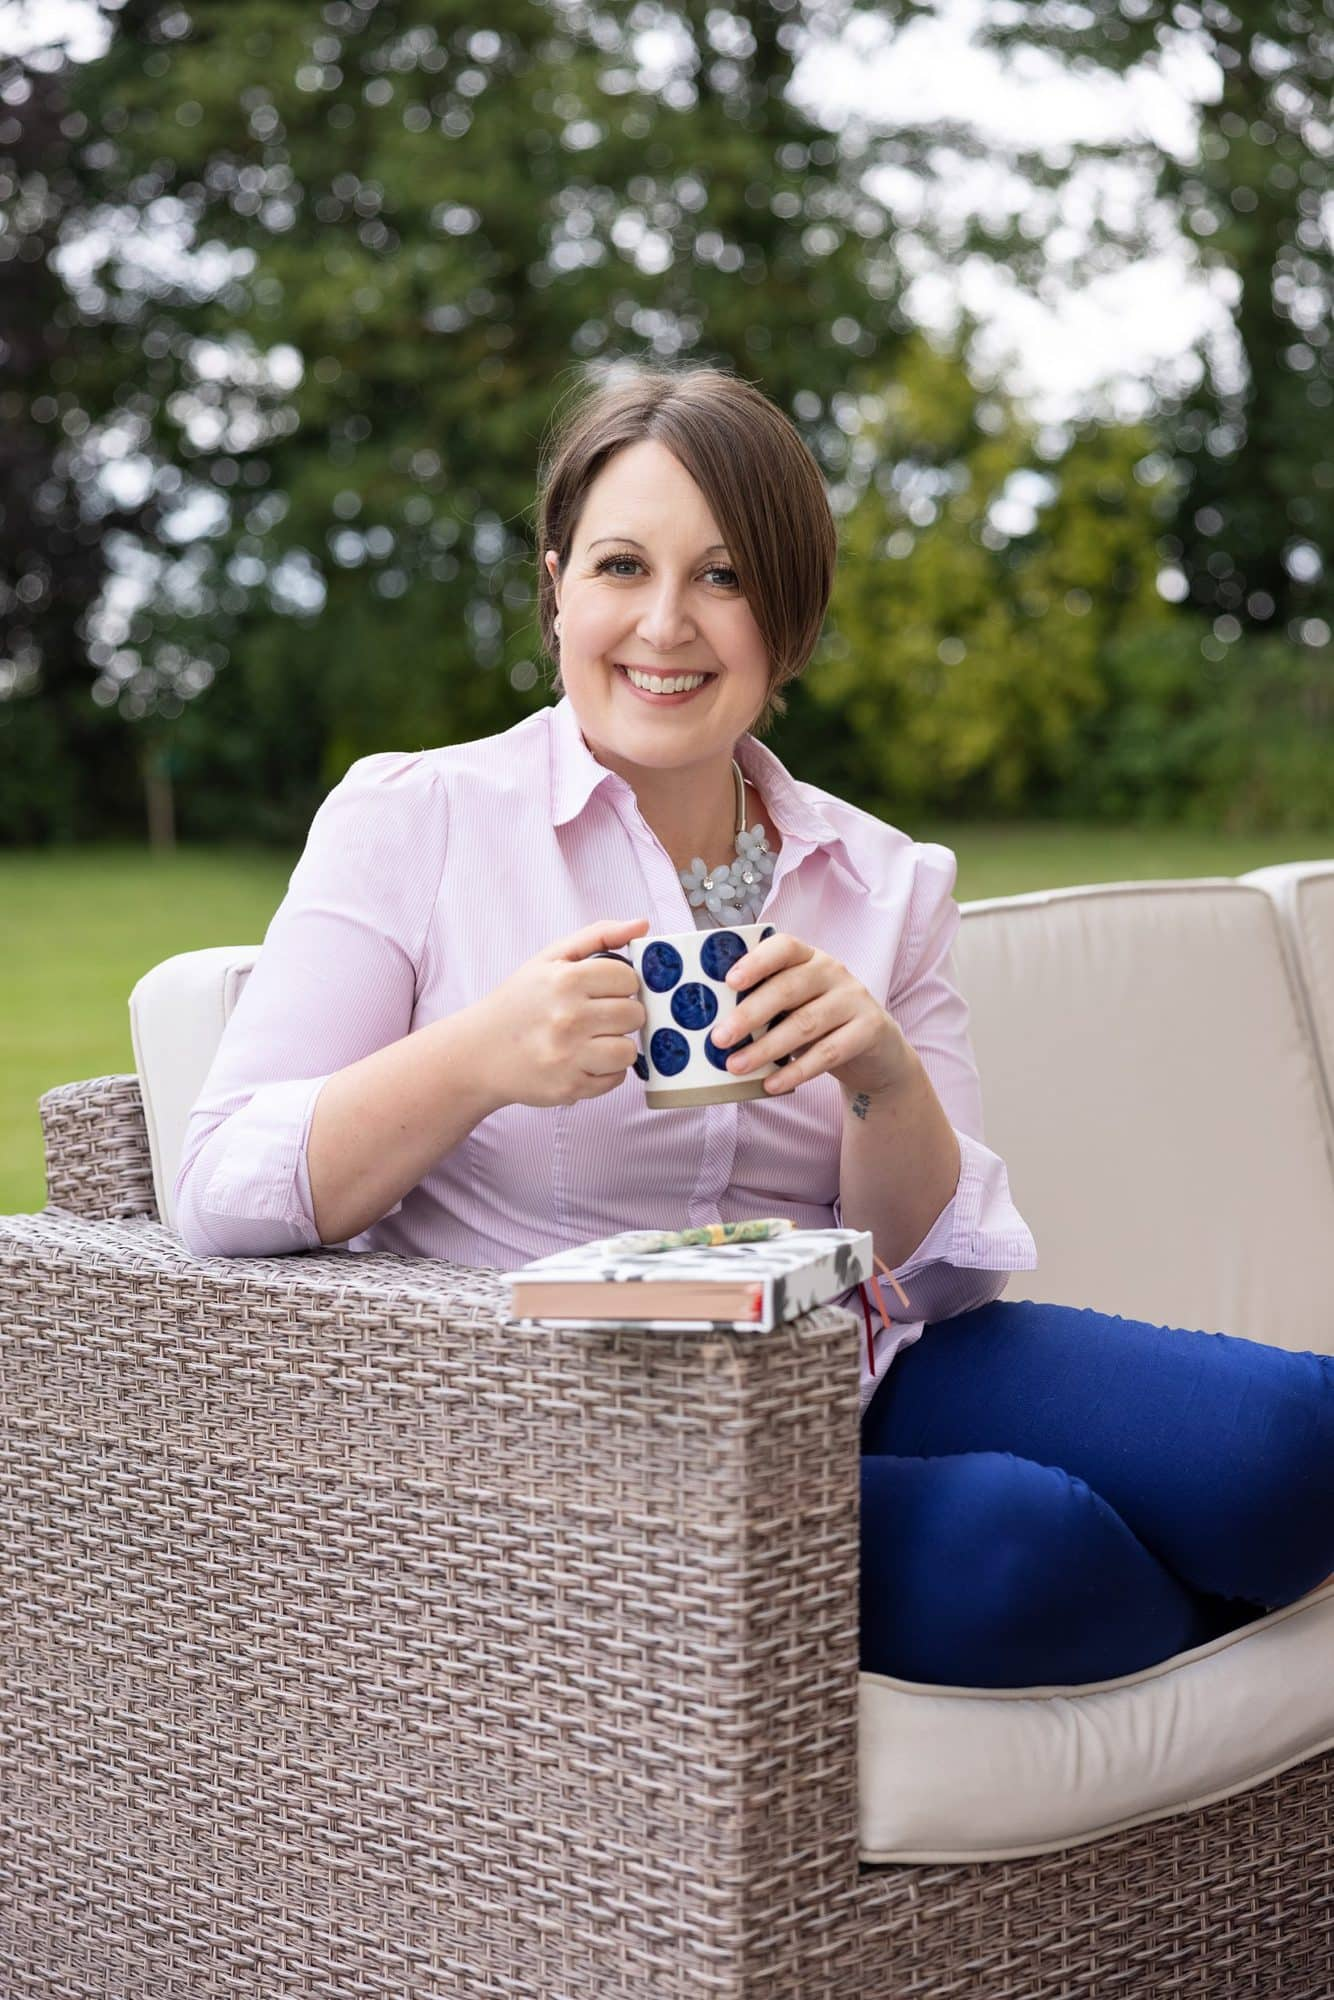 Woman in pink shirt and jeans sits on sofa drinking coffee during her Personal Branding Photo shoot in Suffolk